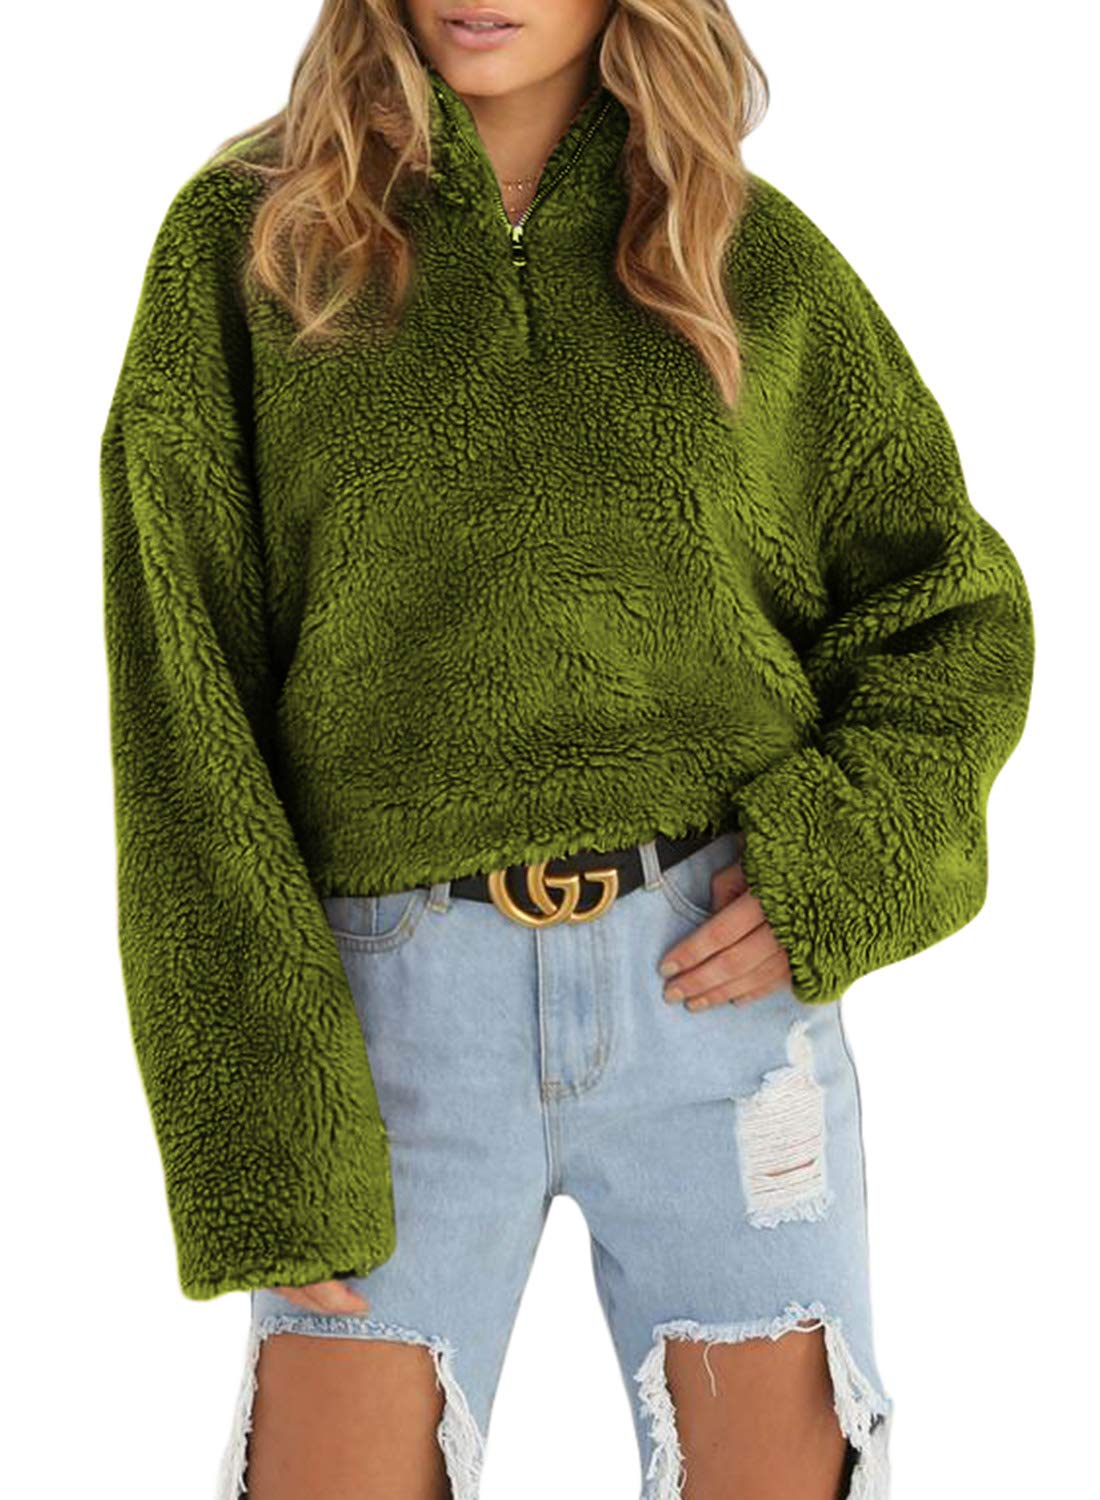 Asvivid Womens Casual Oversized 1/4 Zipper Faux Fur Fleece Jumper Baggy Loose Pullover Outerwear Plus Size 2X Green